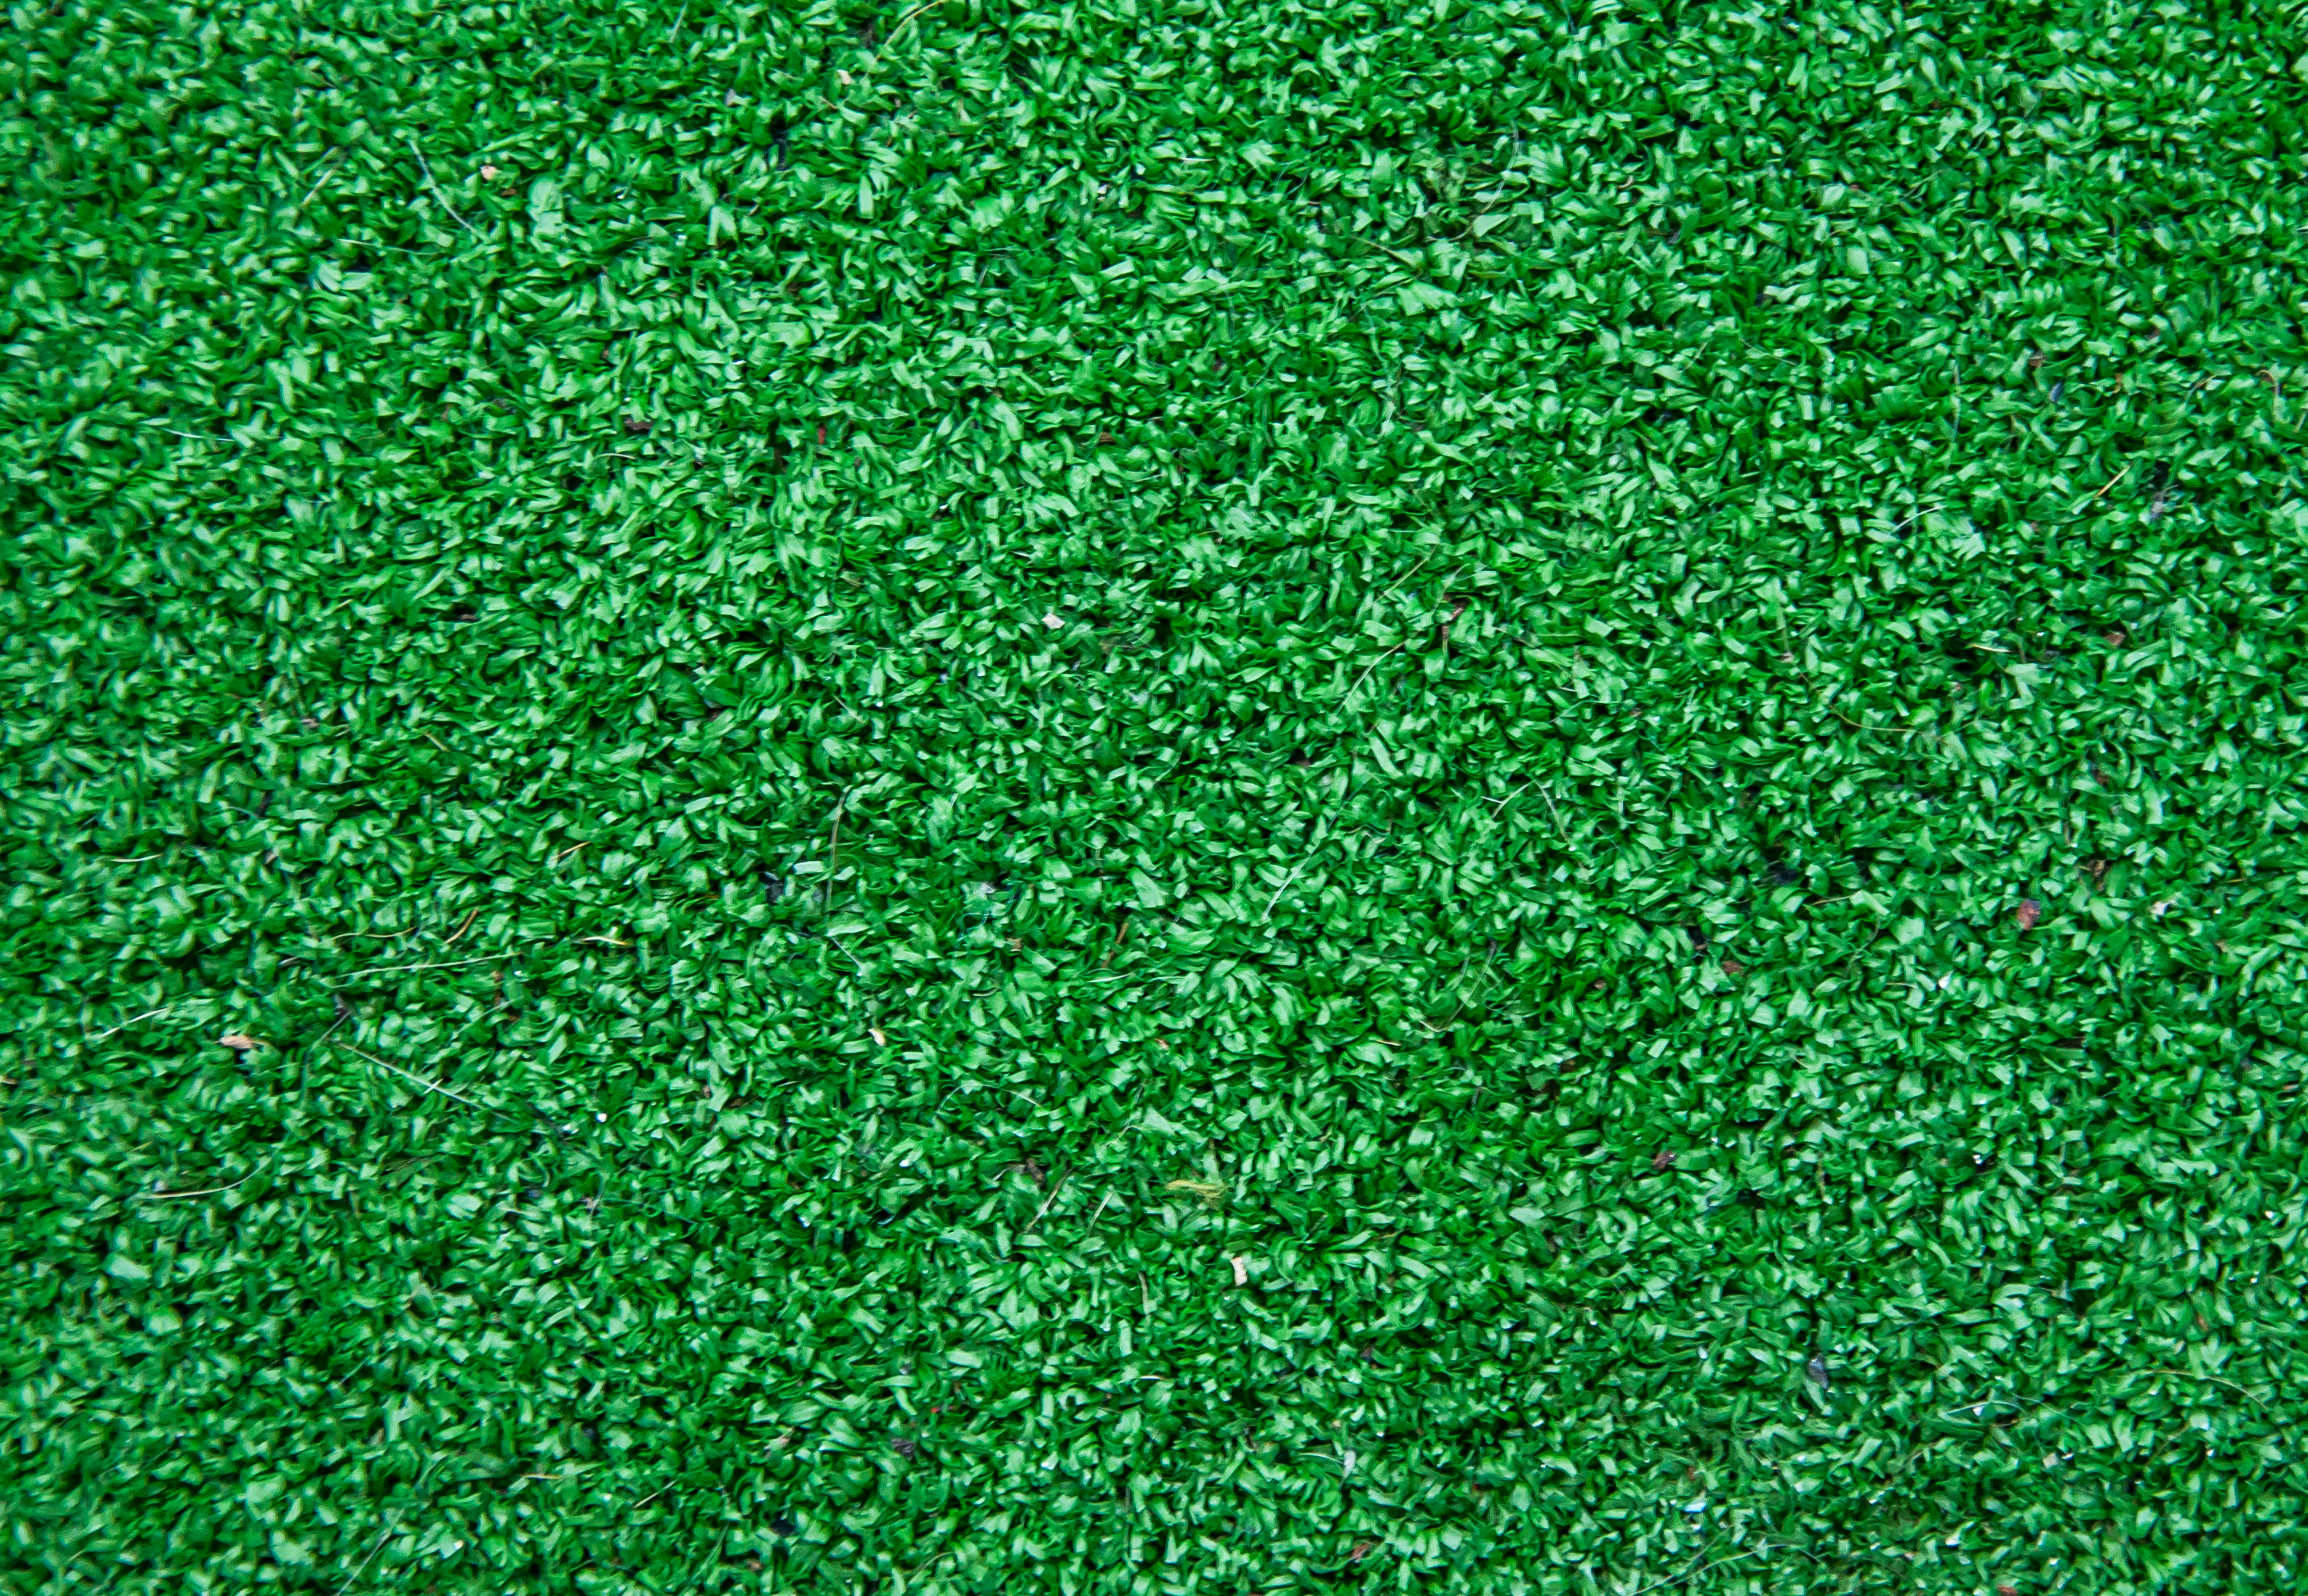 Free Photo Artificial Grass Background Lawn Indoor